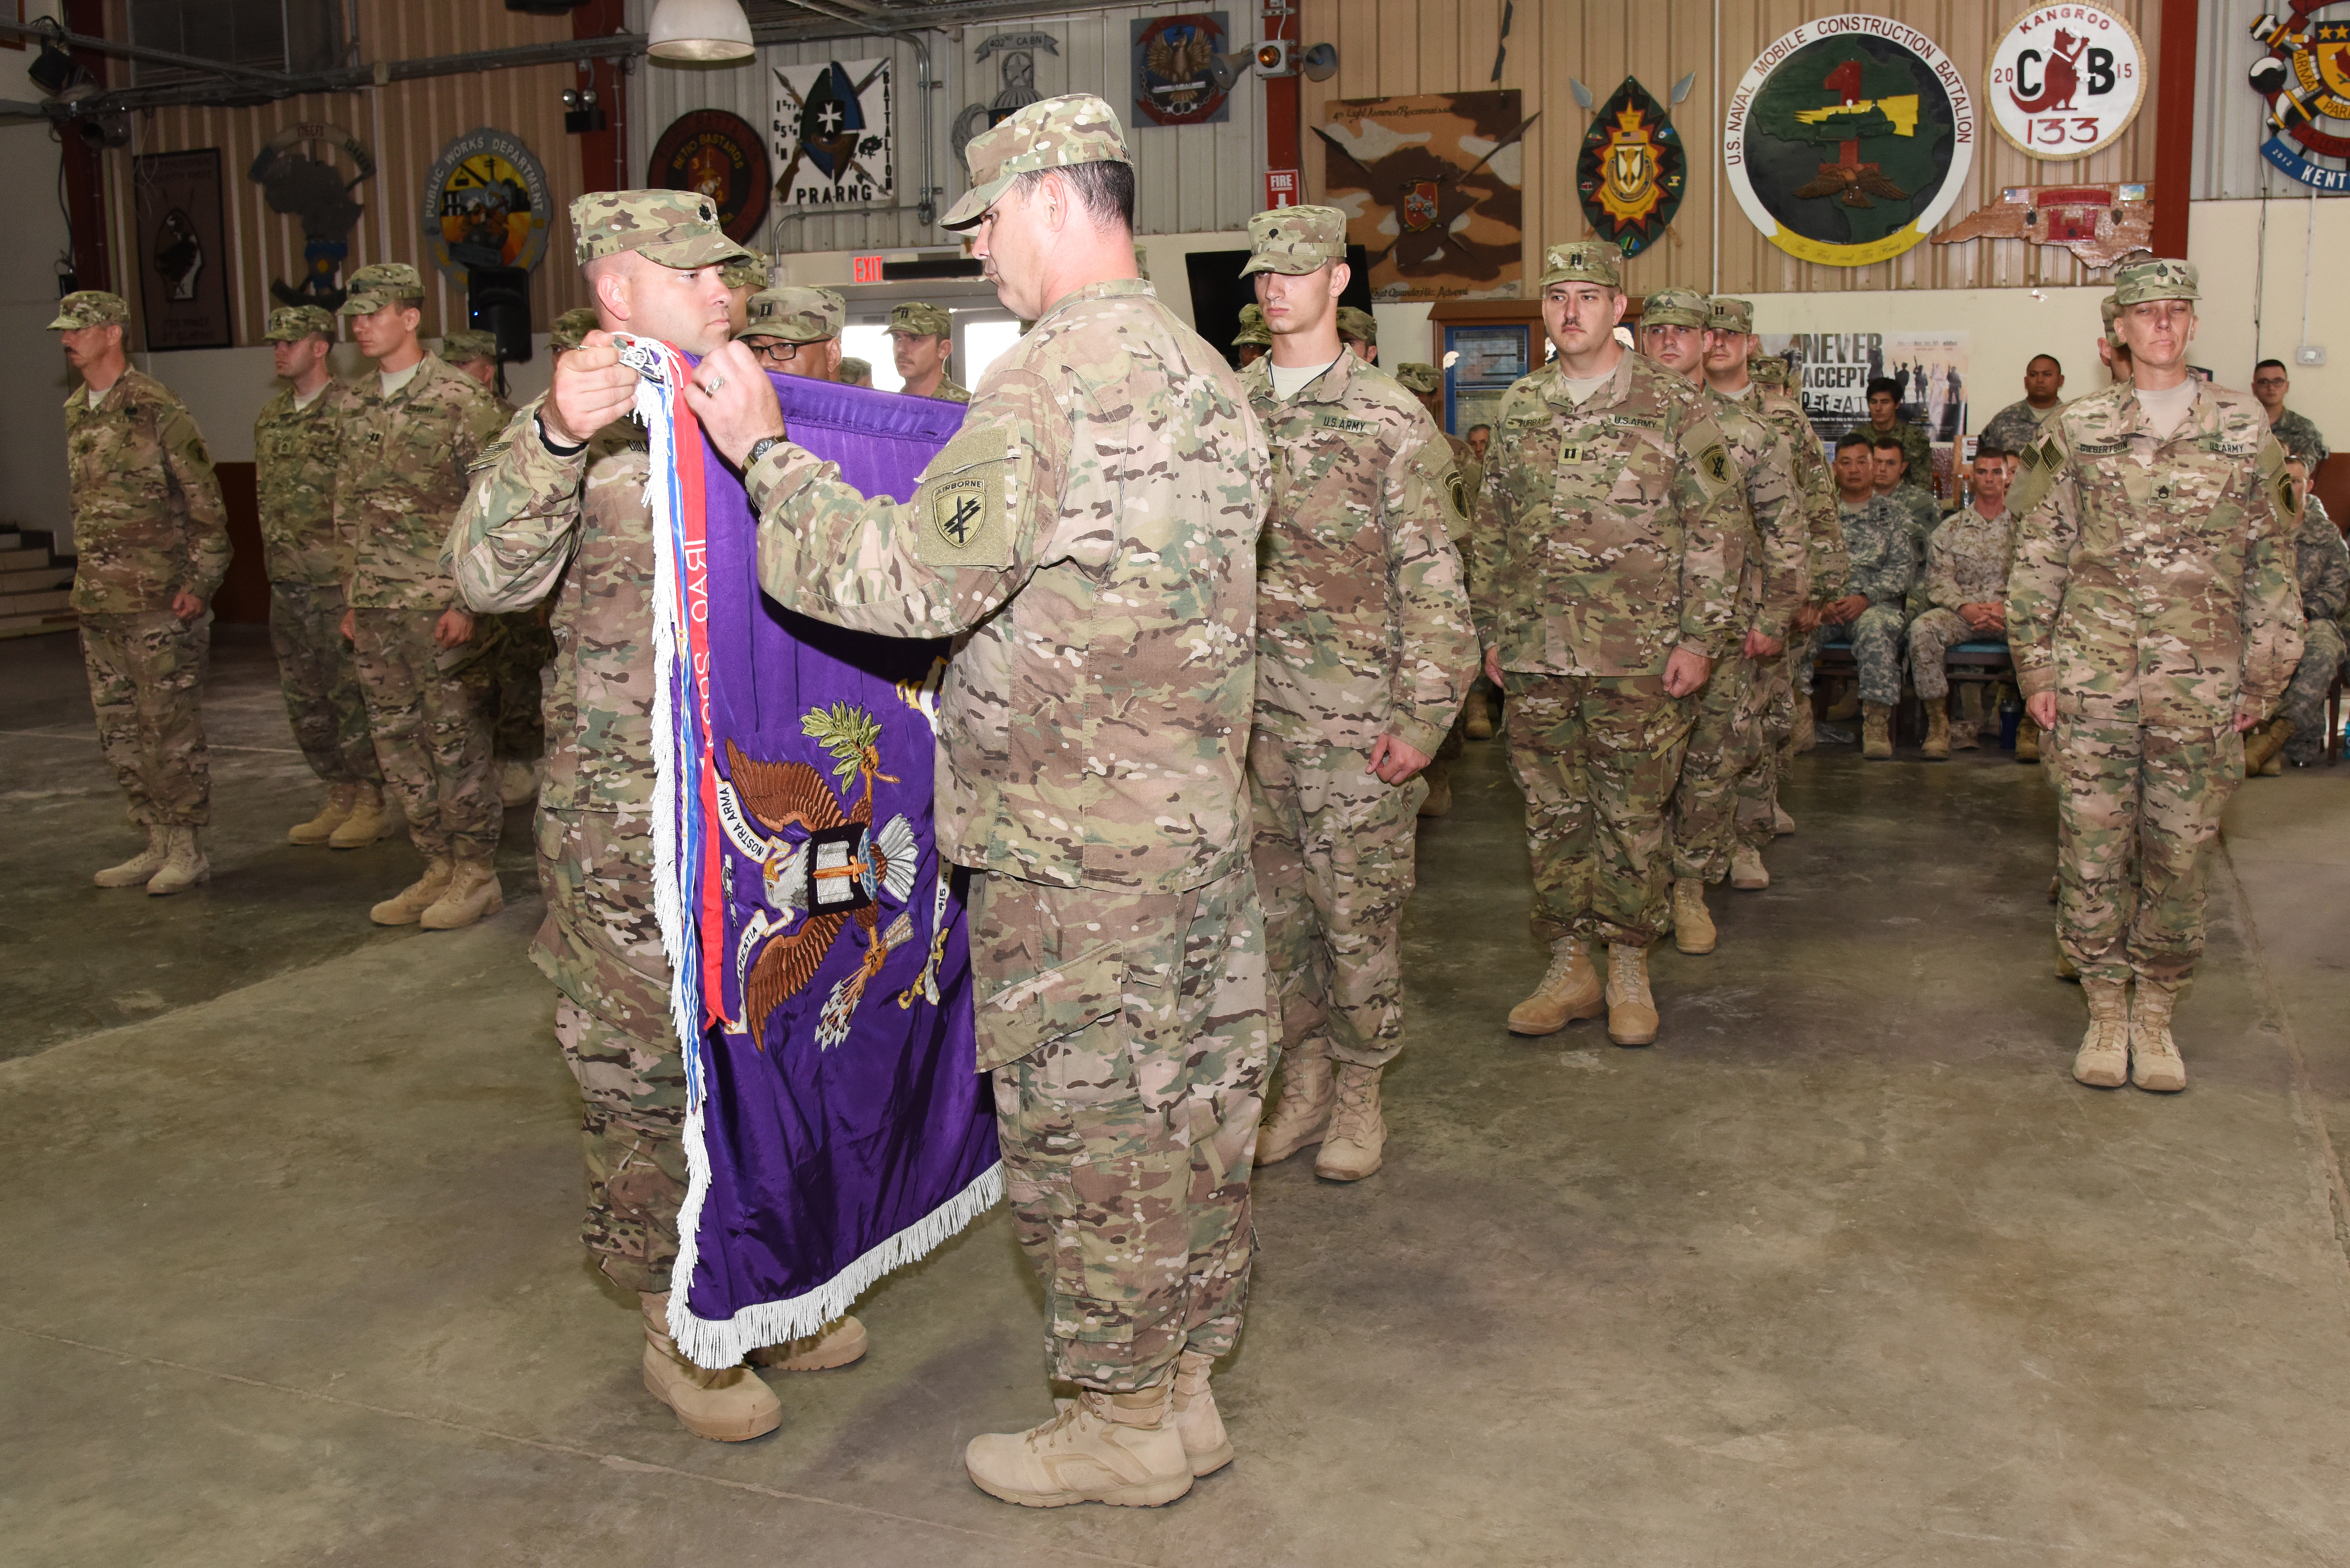 U.S. Army Lt. Col. Gerry Dolan, 415th Civil Affairs Battalion commander, unrolls his unit flag at a transfer of authority ceremony June 22, 2015 at Camp Lemonnier, Djibouti.  The uncasing of the battalion colors signifies the company's arrival from Kalamazoo, Mich., and its preparedness to assume its role within the Combined Joint Task Force-Horn of Africa. (U.S. Air Force photo by Staff Sgt. Maria Bowman)